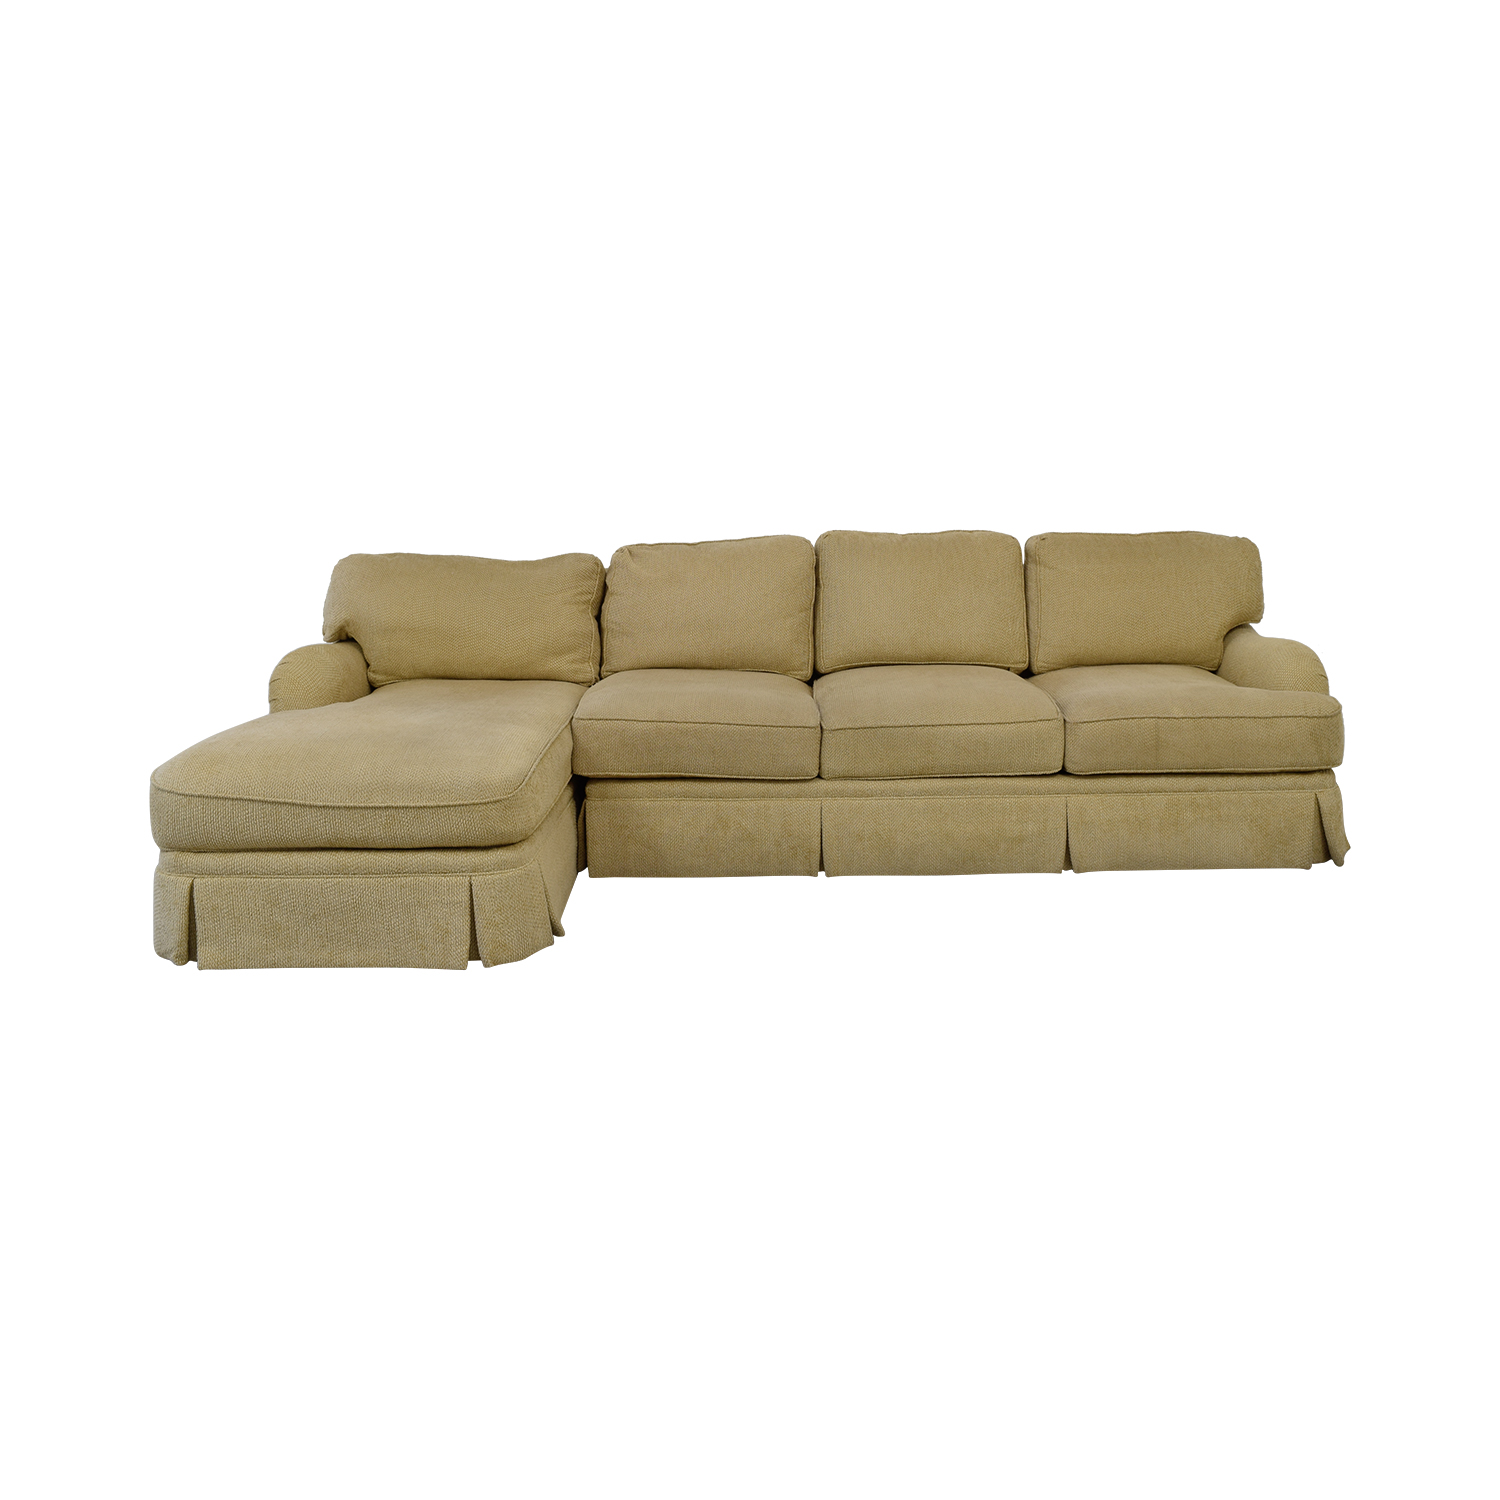 C R Laine Beige Skirted Chaise Sectional sale